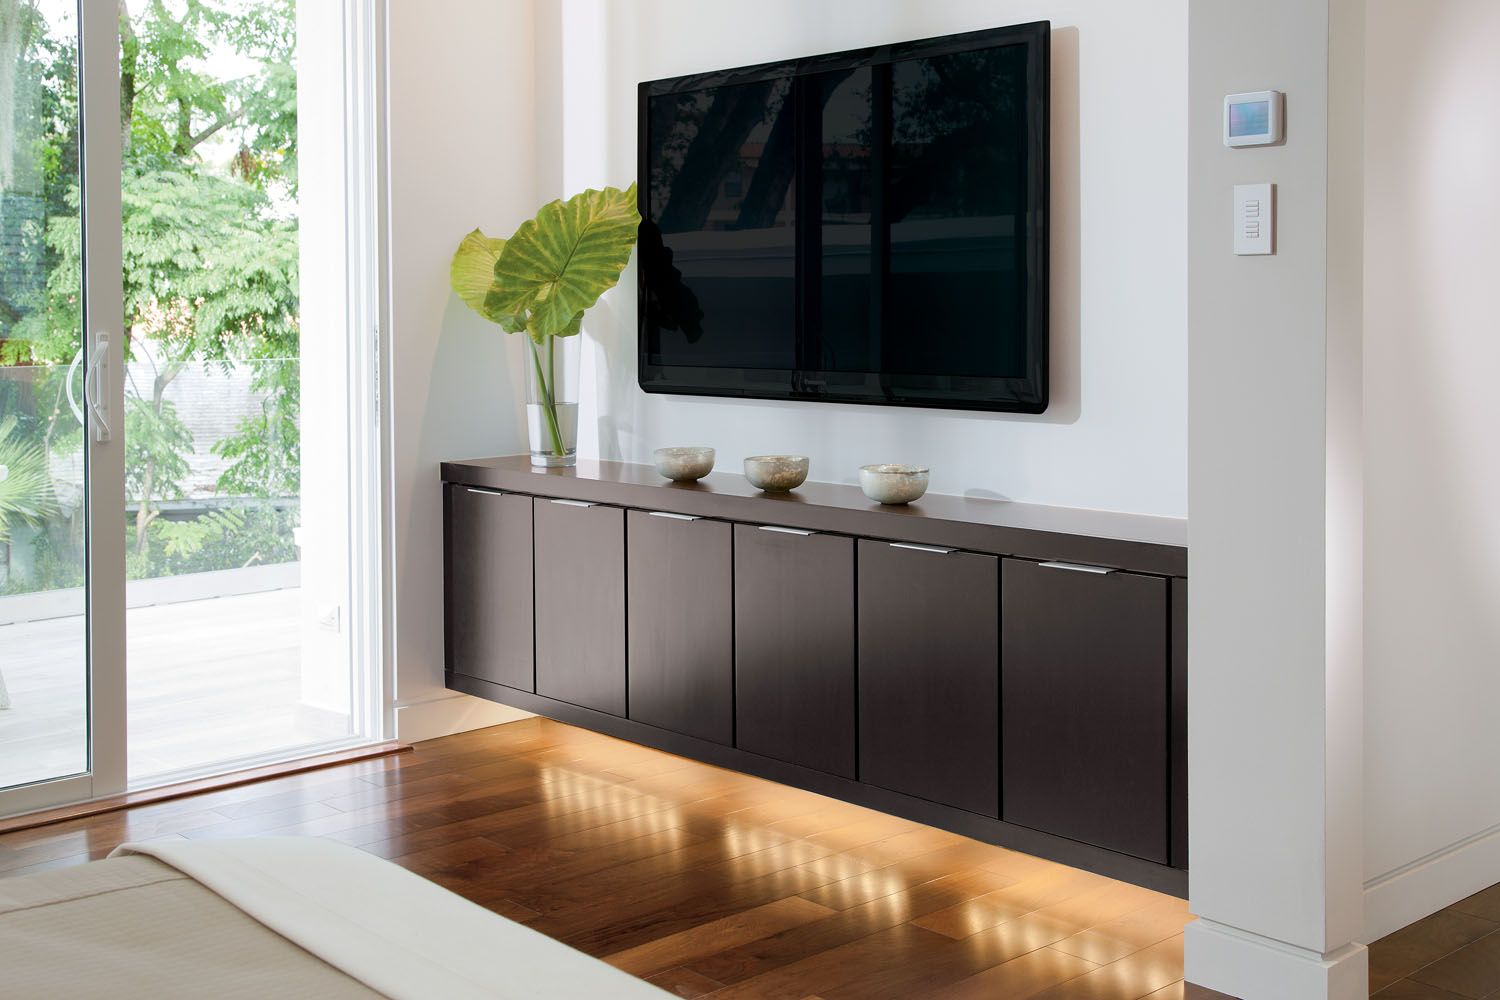 Merveilleux Floating Media Cabinet | Reinvent The Media Room With Cabinetry